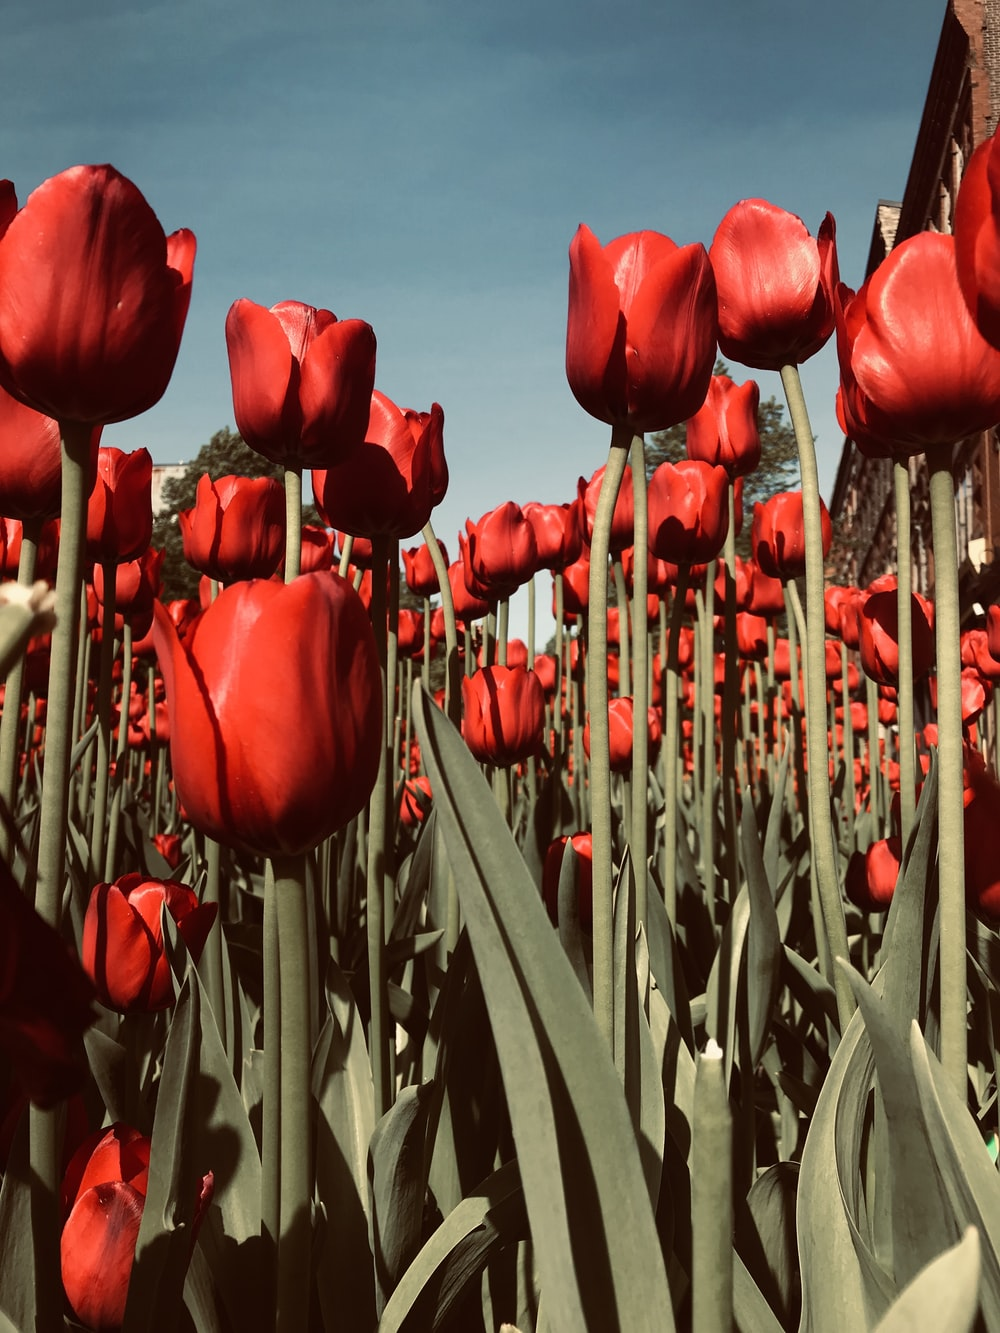 red tulips on brown wooden fence